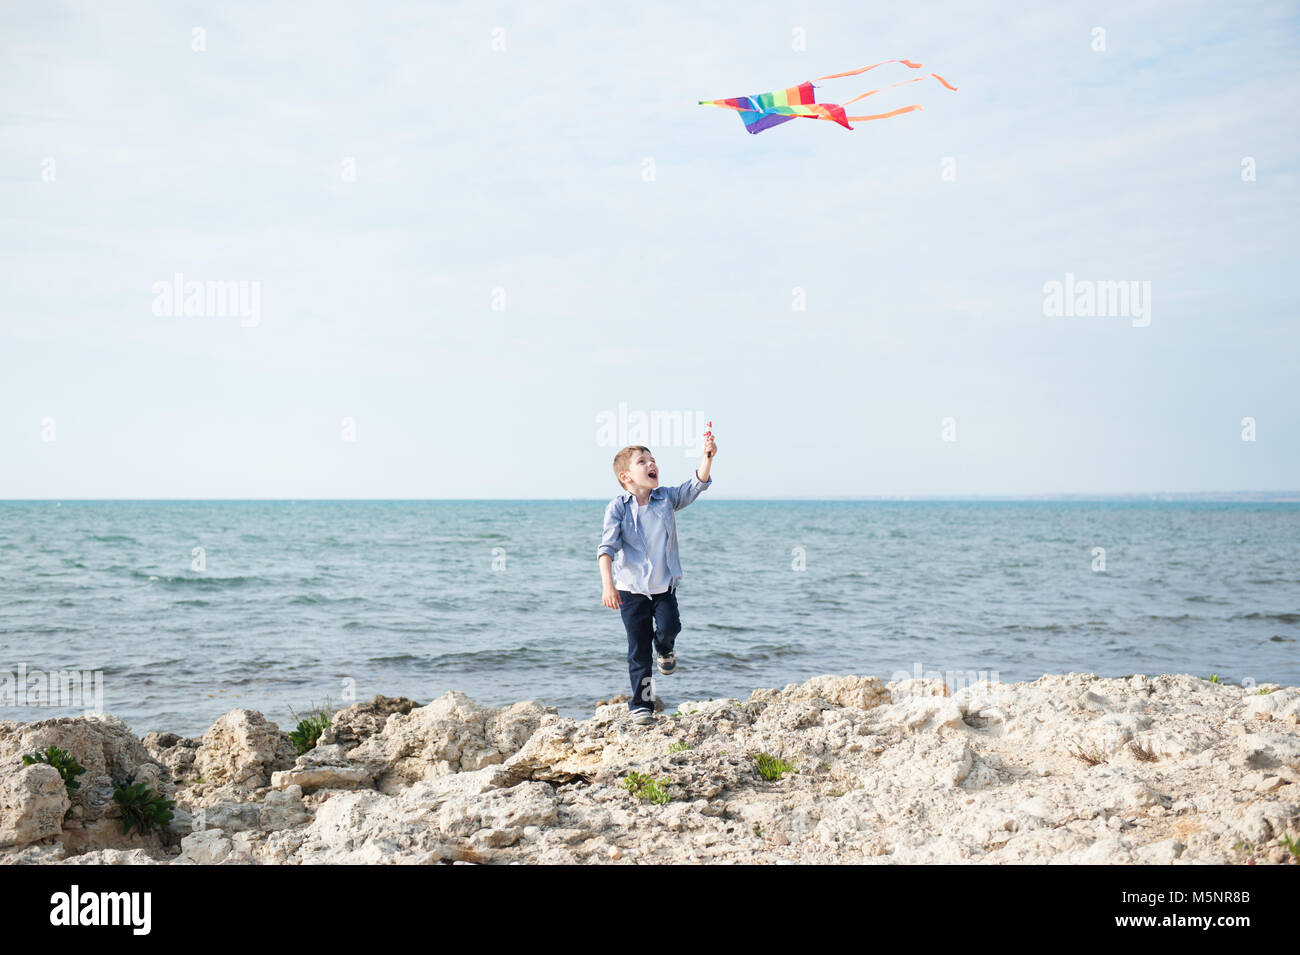 happy little boy with colored kite by the sea in California - Stock Image